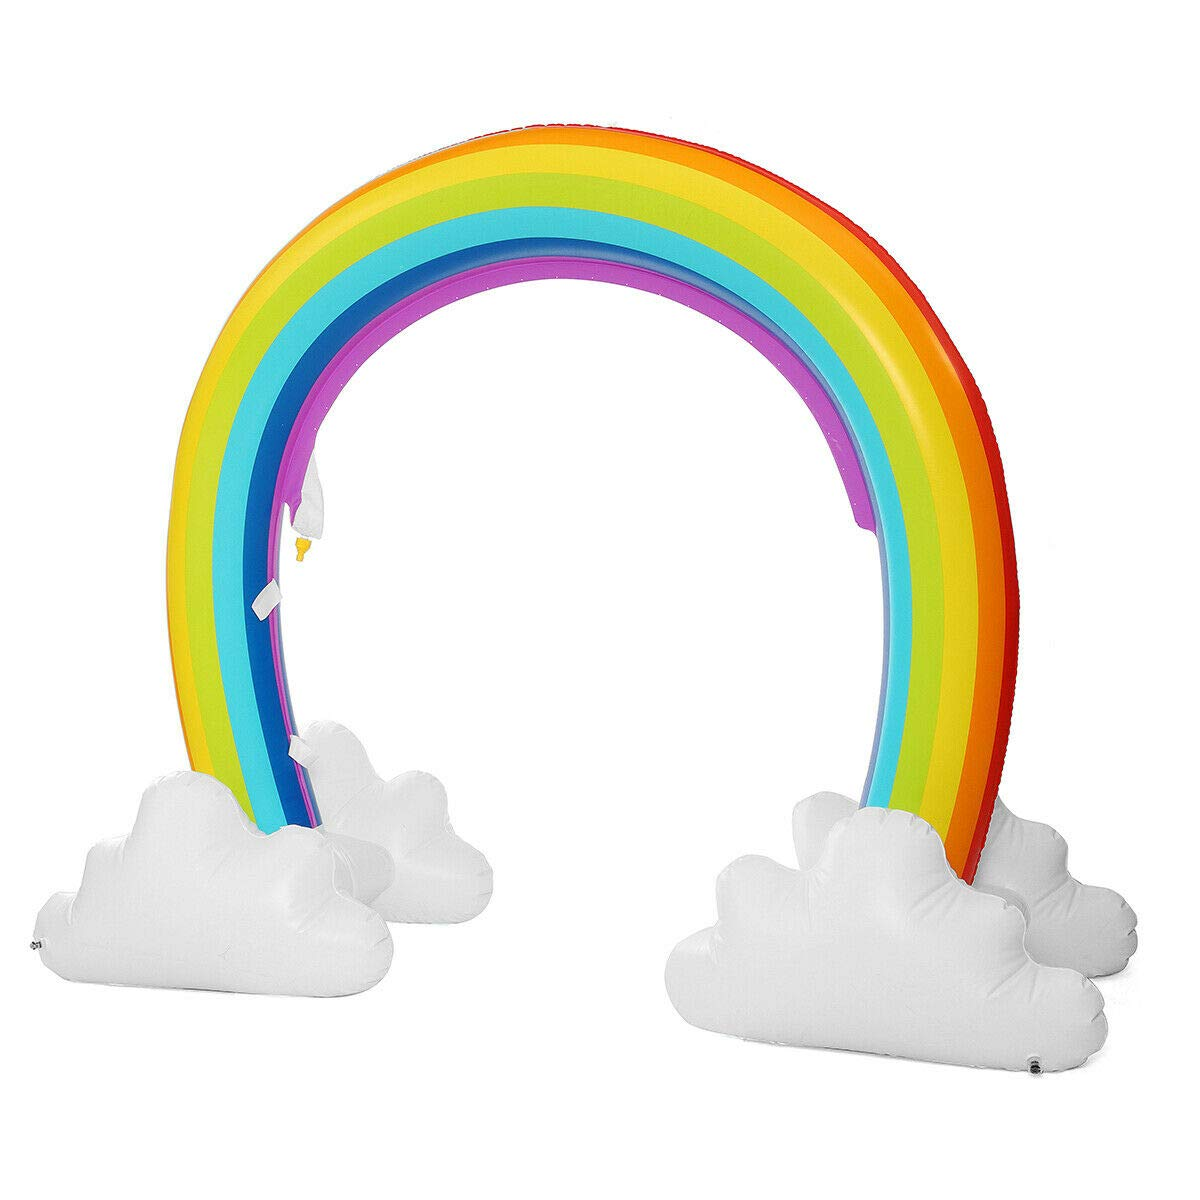 MerryXD Rainbow Sprinkler,Giant Water Inflatable Arch Sprinkler Outdoor Summer Toys for Kids by MerryXD (Image #6)